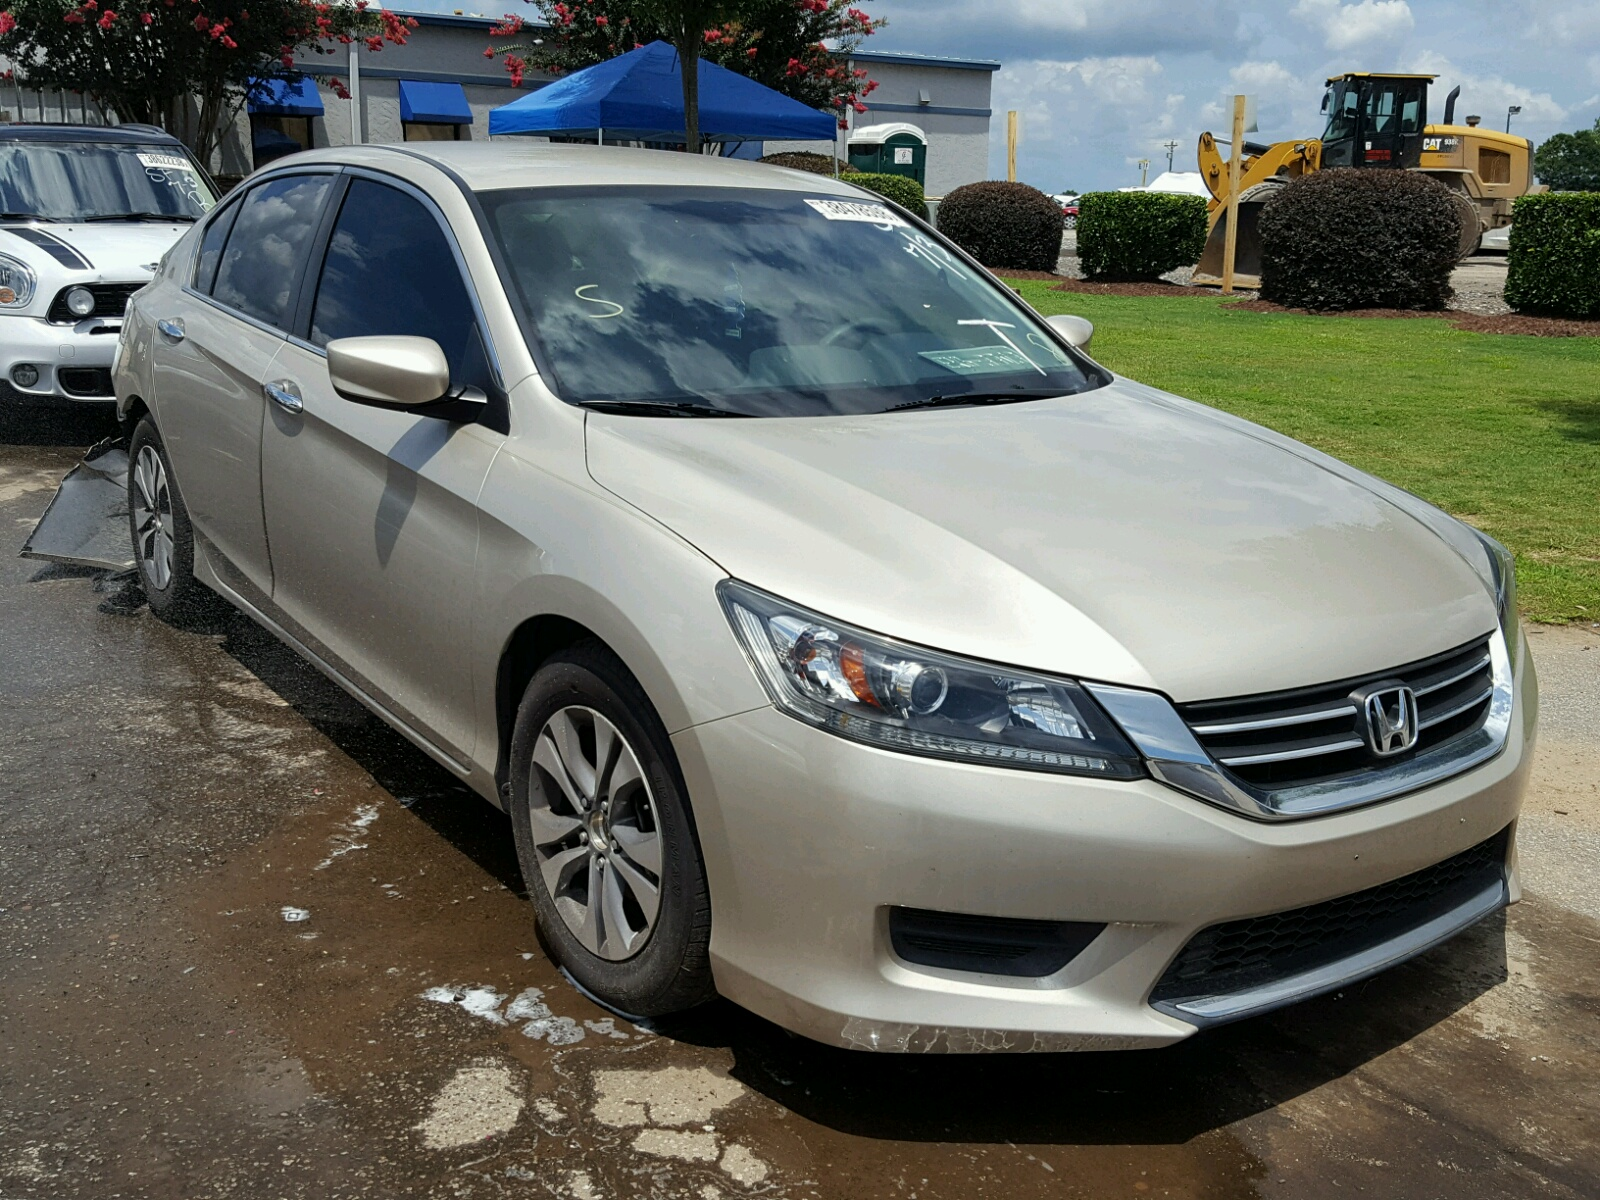 2014 Honda Accord Lx For Sale At Copart Spartanburg Sc Lot 38478598